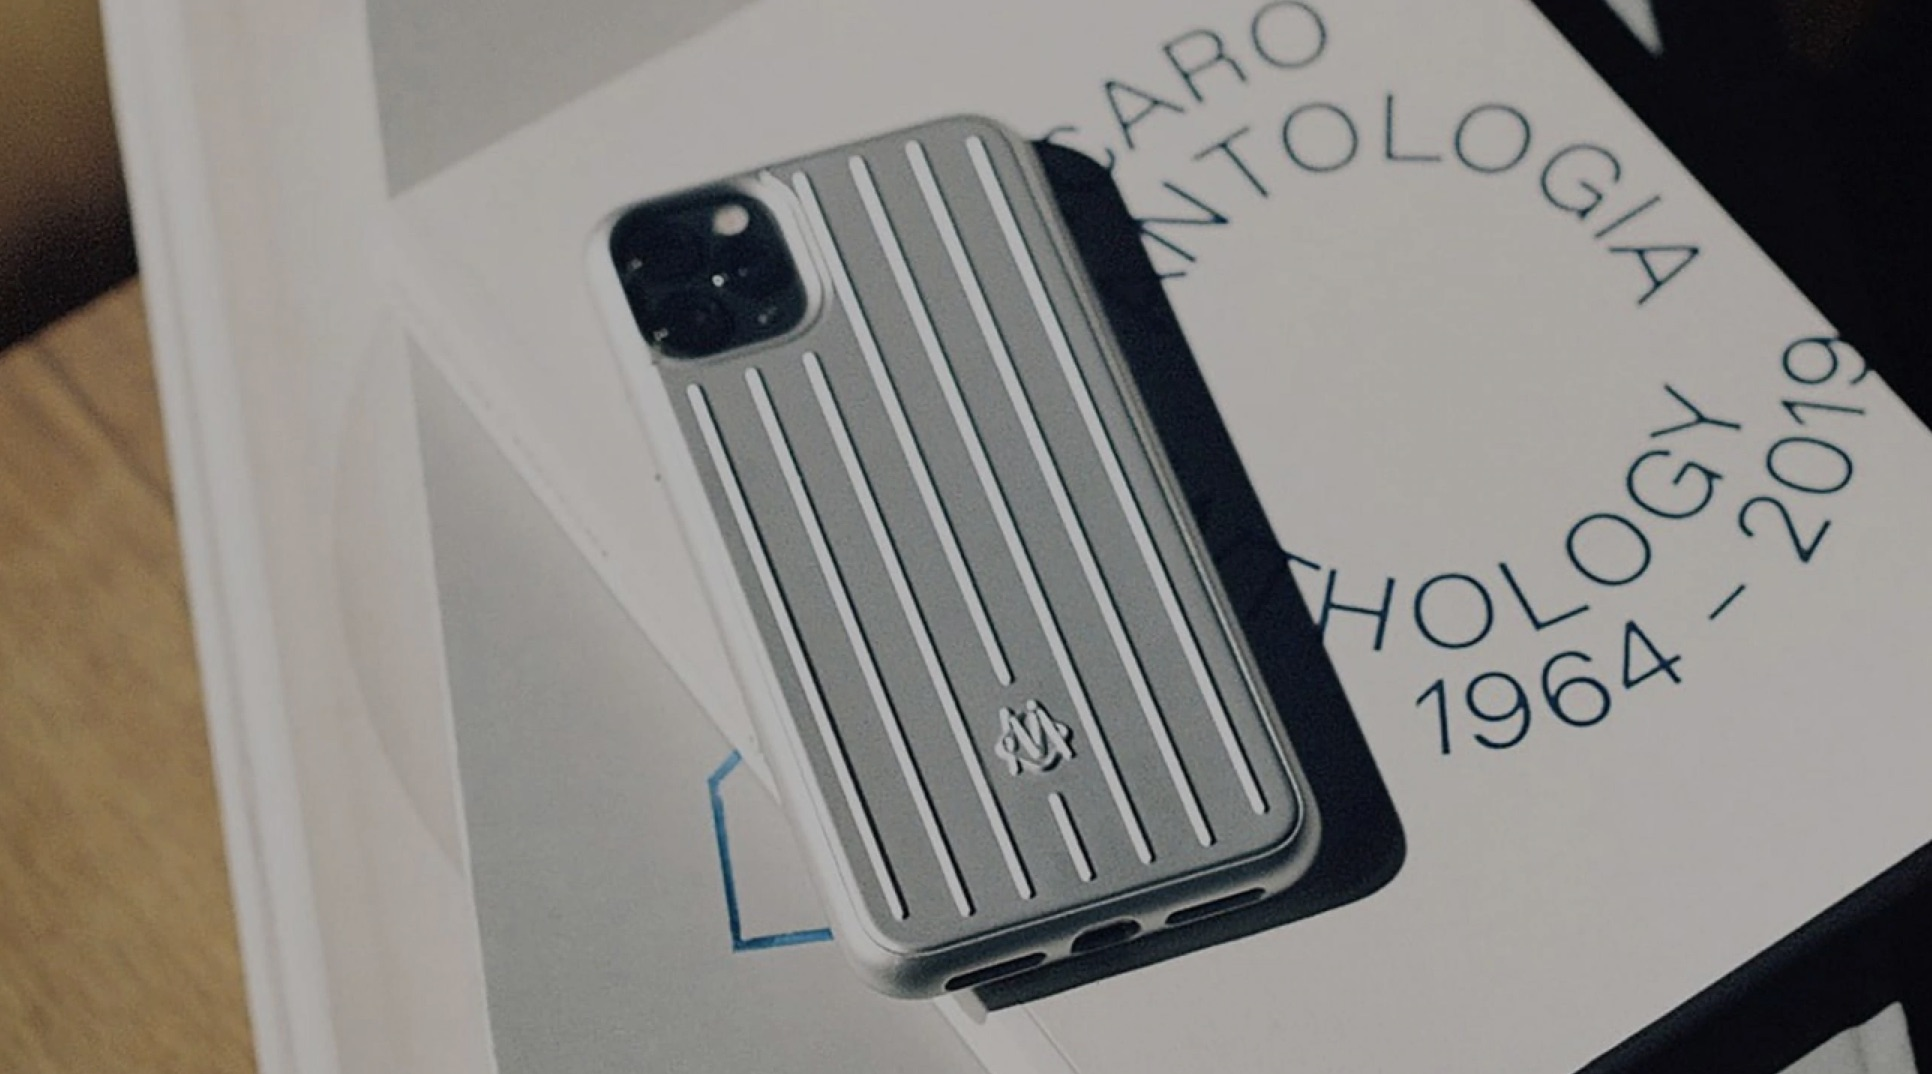 Rimowa's New iPhone Cases Bring Travel Inspiration To Daily Life